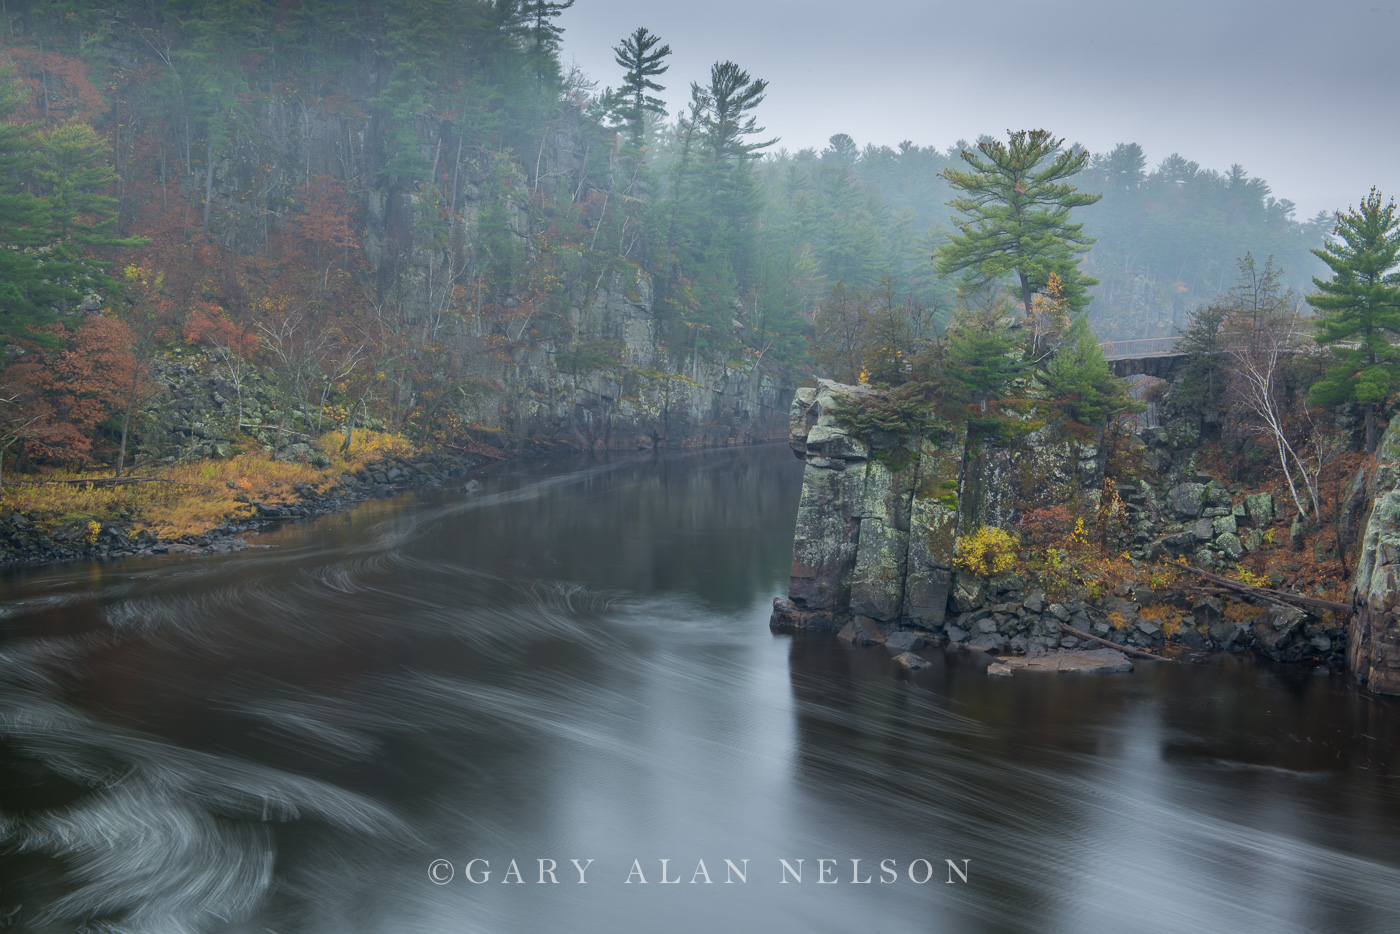 st. croix river, national scenic river, wisconsin, minnesota, fog, photo